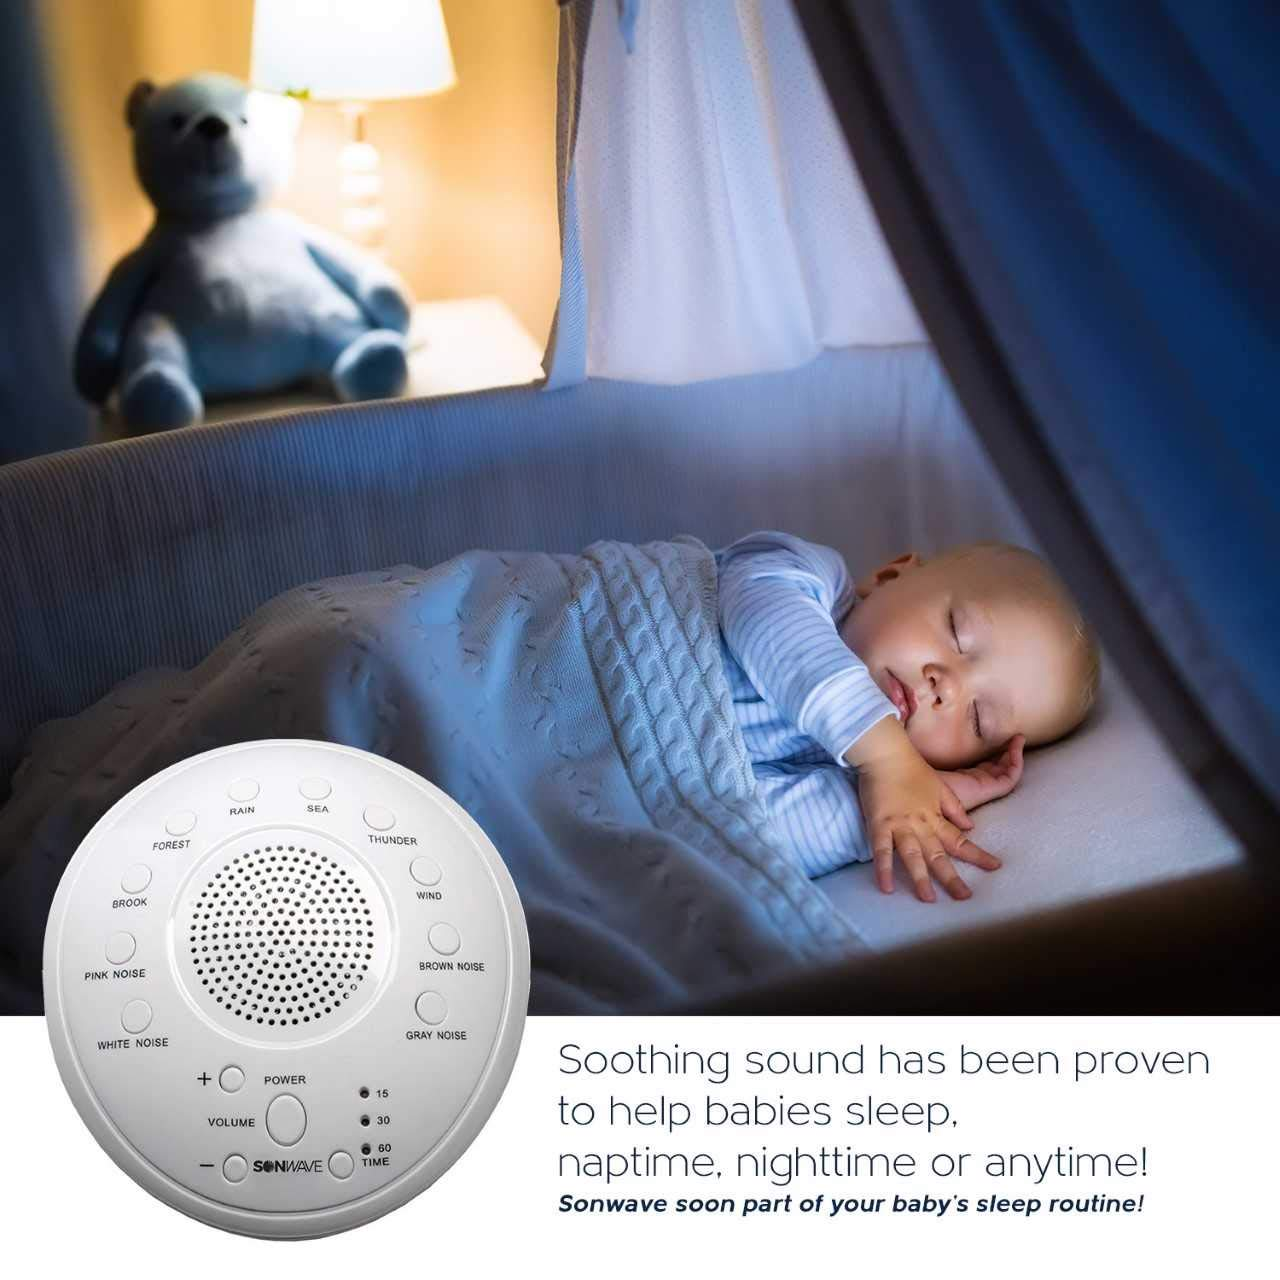 Travel White Noise Sound Machine 10 Natural Soothing Sound Tracks Home Multiple Timer Settings Battery or Adapter Charging Options Baby SonTech Office